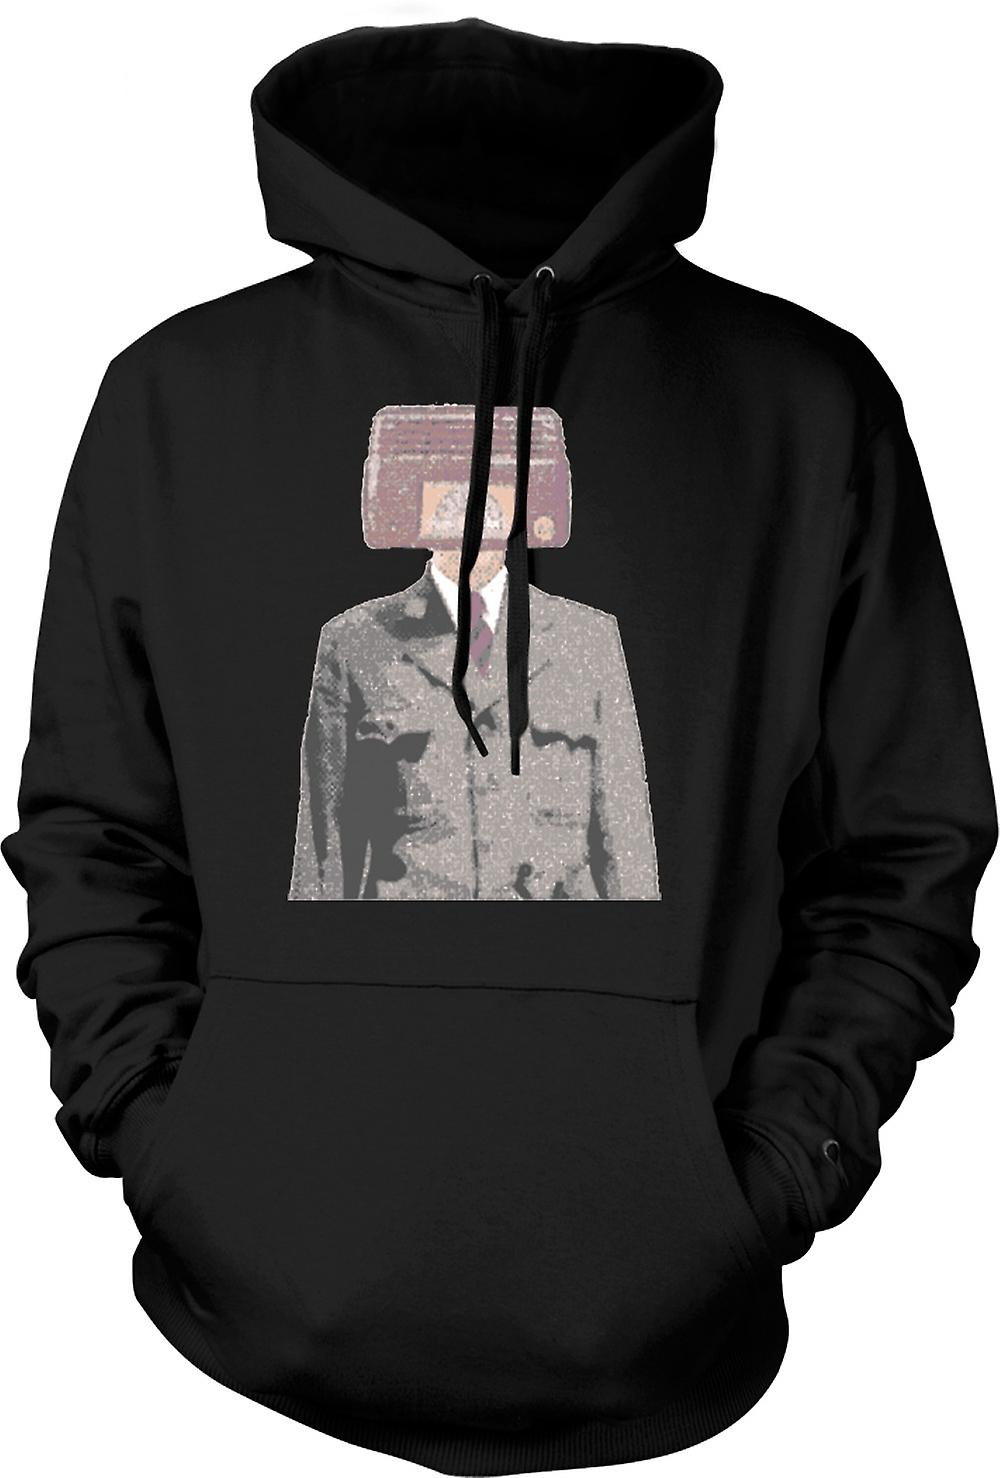 Barn Hoodie - Radiohead - Pop Art - Design